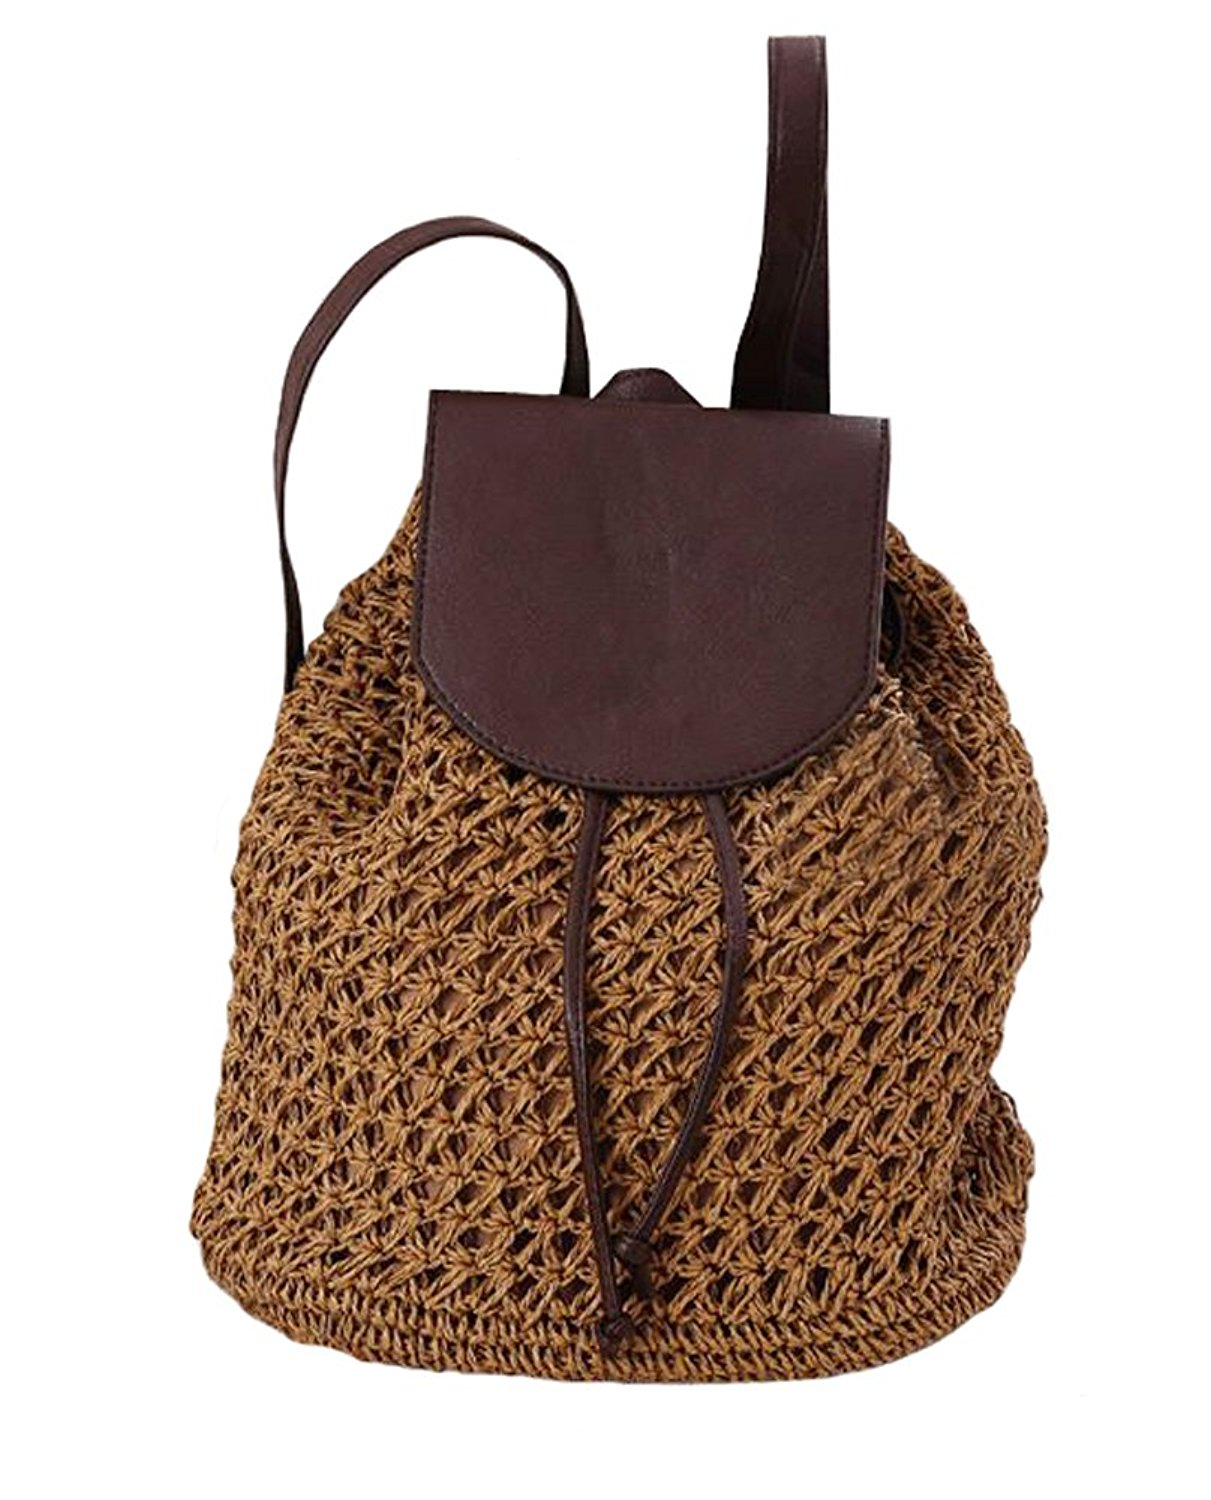 fbd331261fe7 Buy Tonwhar Paper String Crochet Straw Woven Bag Shoulder Tote Beach ...